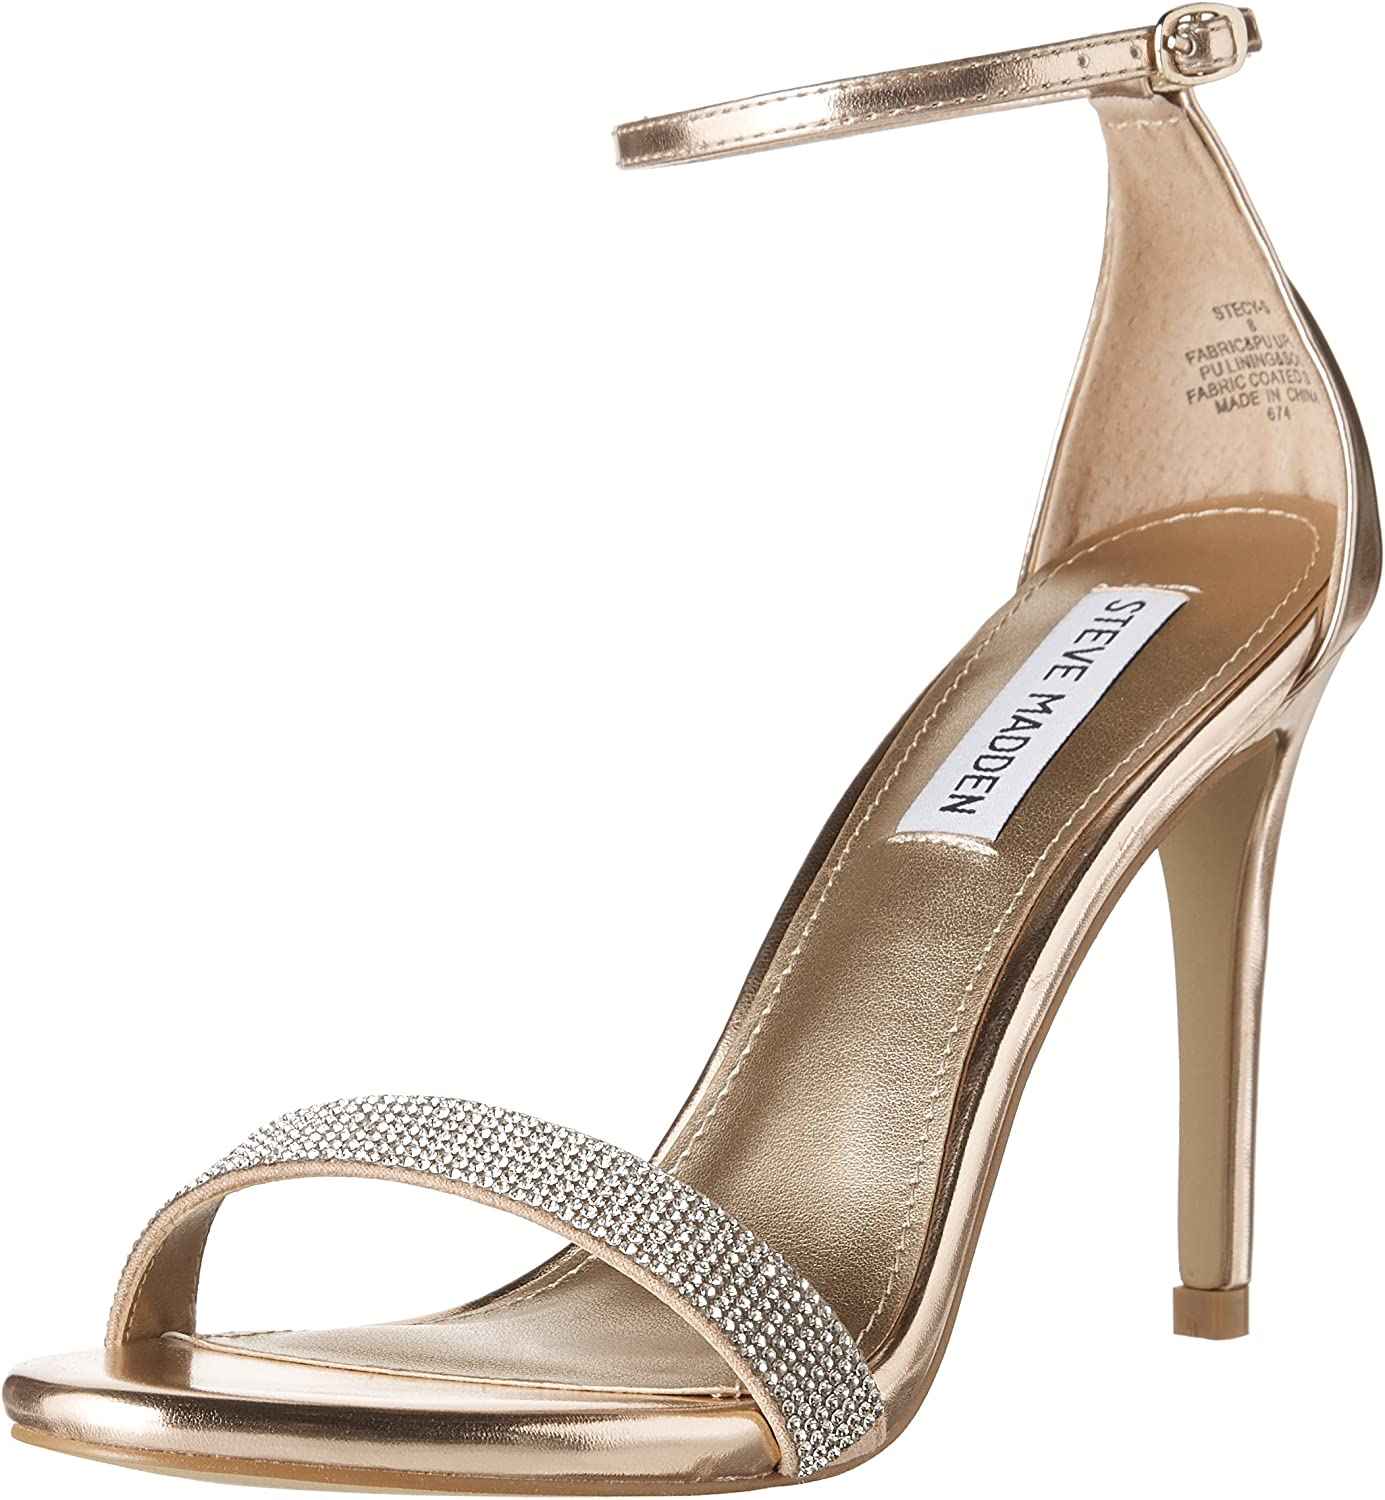 Steve Madden Womens Stecys Heeled Sandals